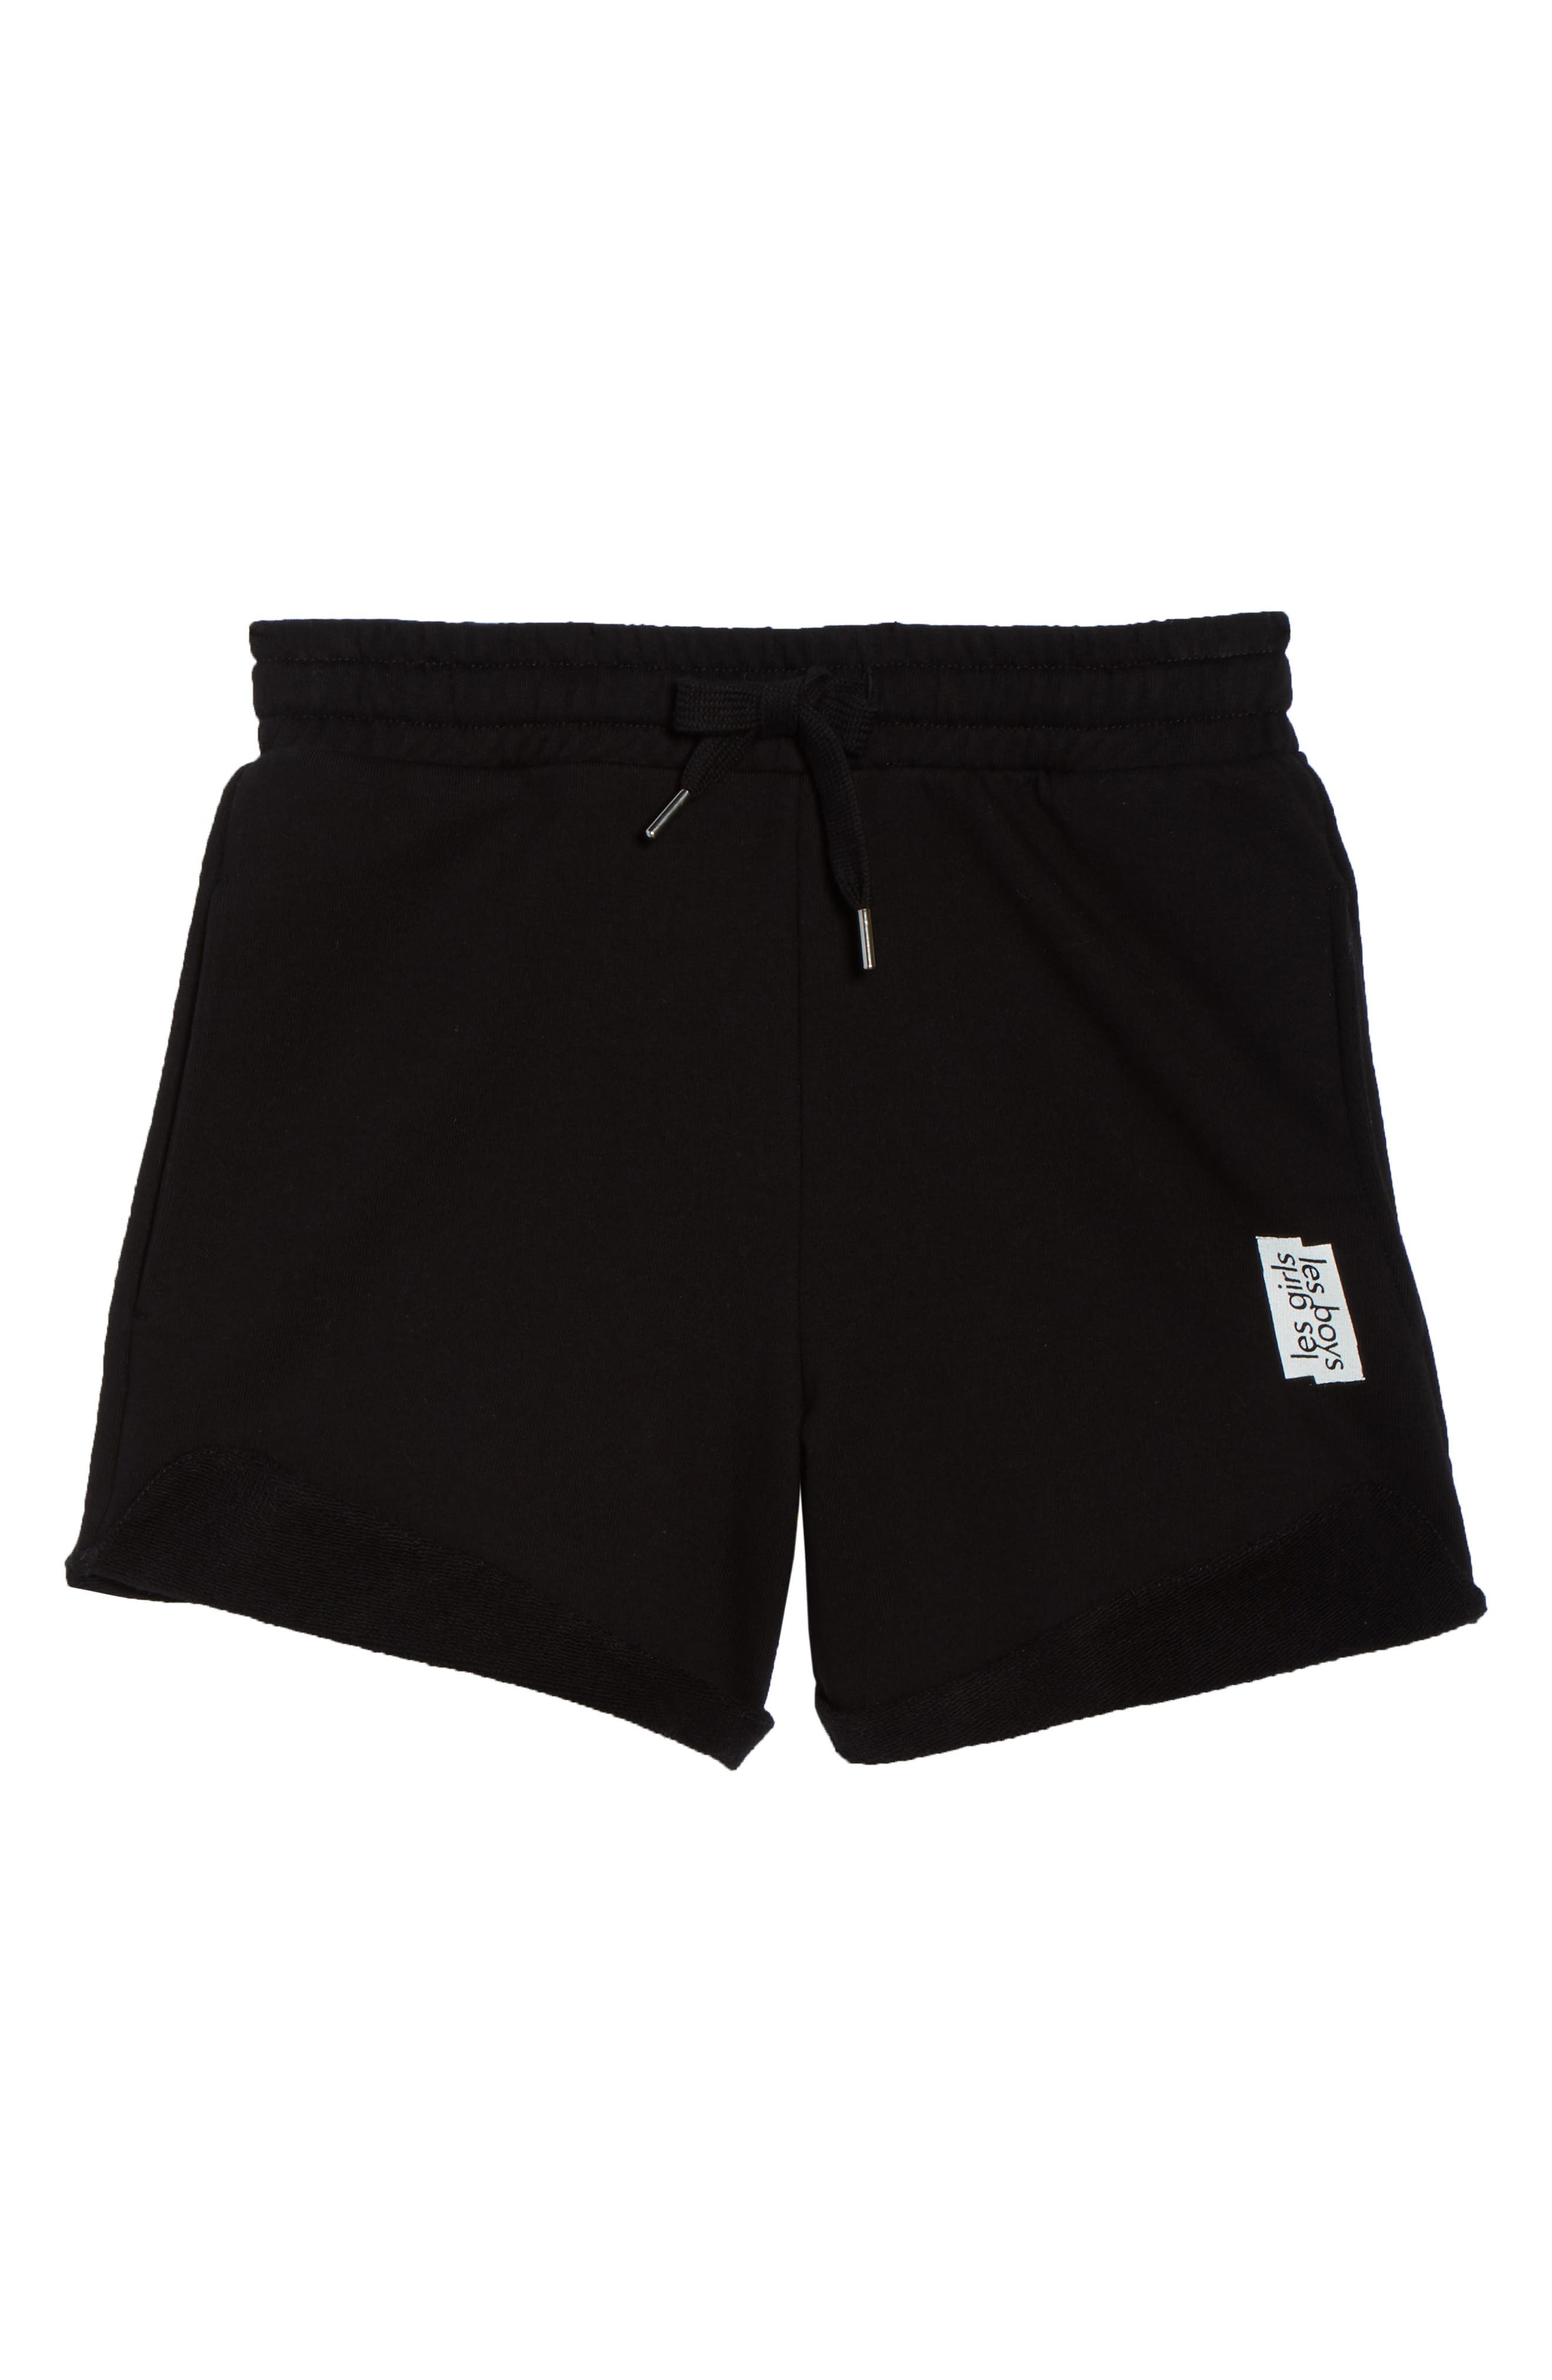 French Terry High Waist Shorts,                             Alternate thumbnail 6, color,                             002